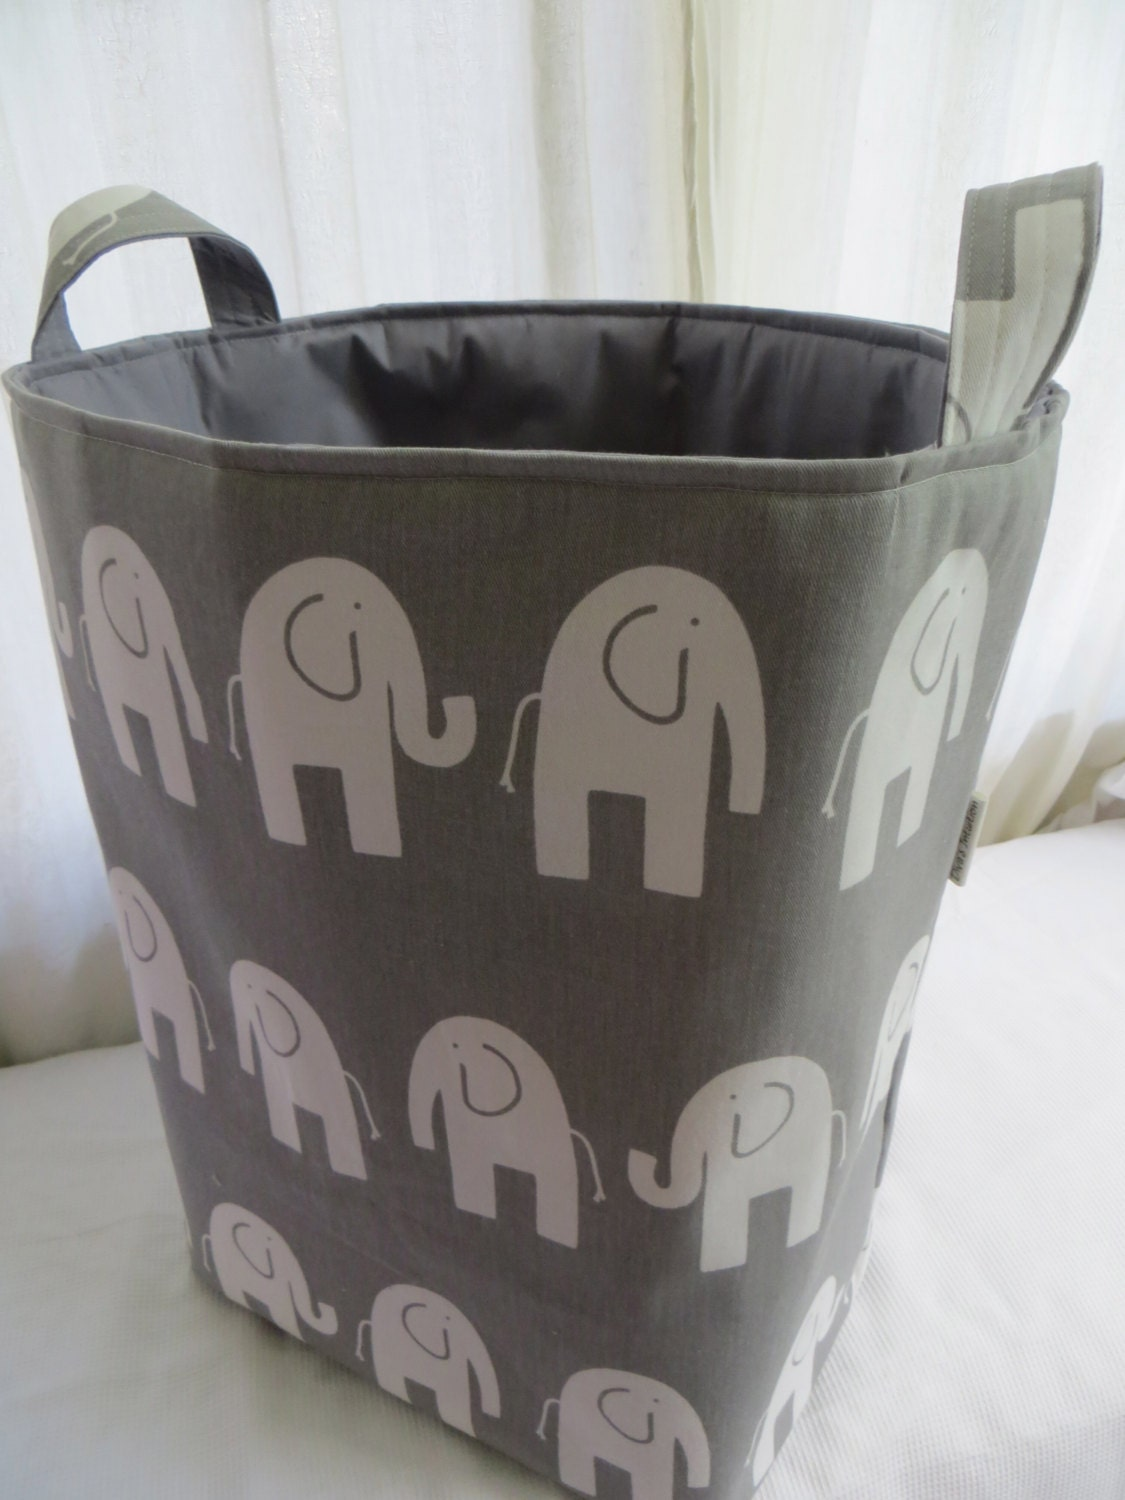 Storage bin laundry hamper toy basket for the by asintuition